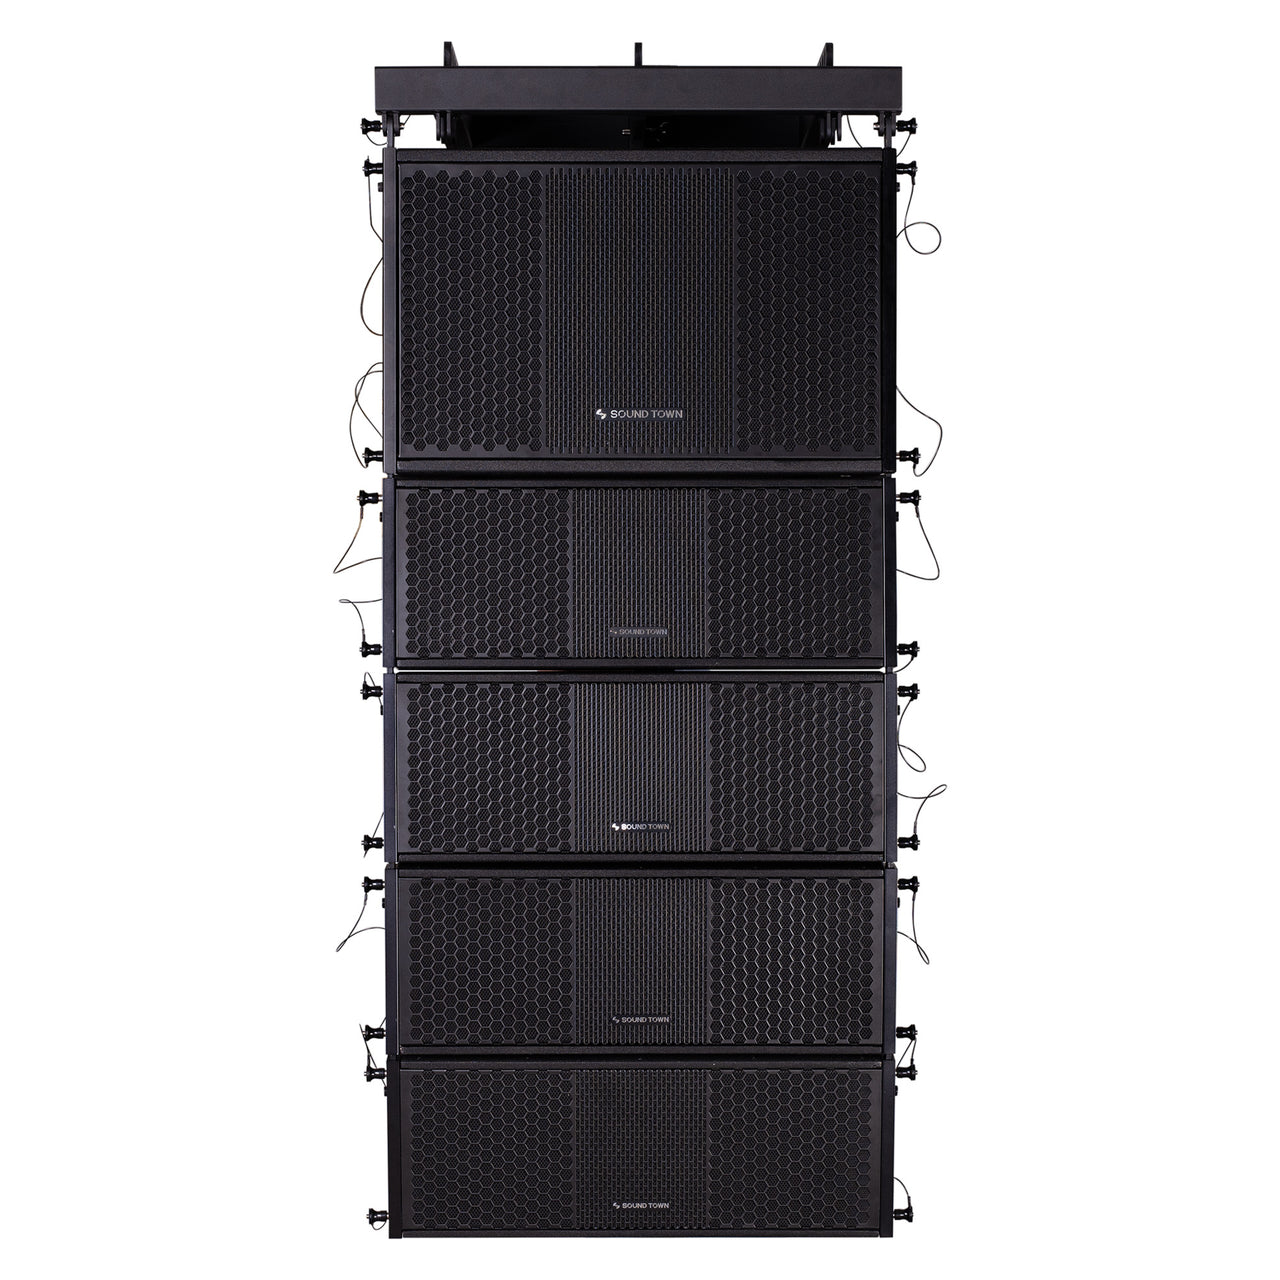 Sound Town ZETHUS-112S-208BV2 ZETHUS Series Line Array Speaker System with One 12-inch Line Array Subwoofer, Four Compact Dual 8-inch Line Array Speakers, Black - Front Panel